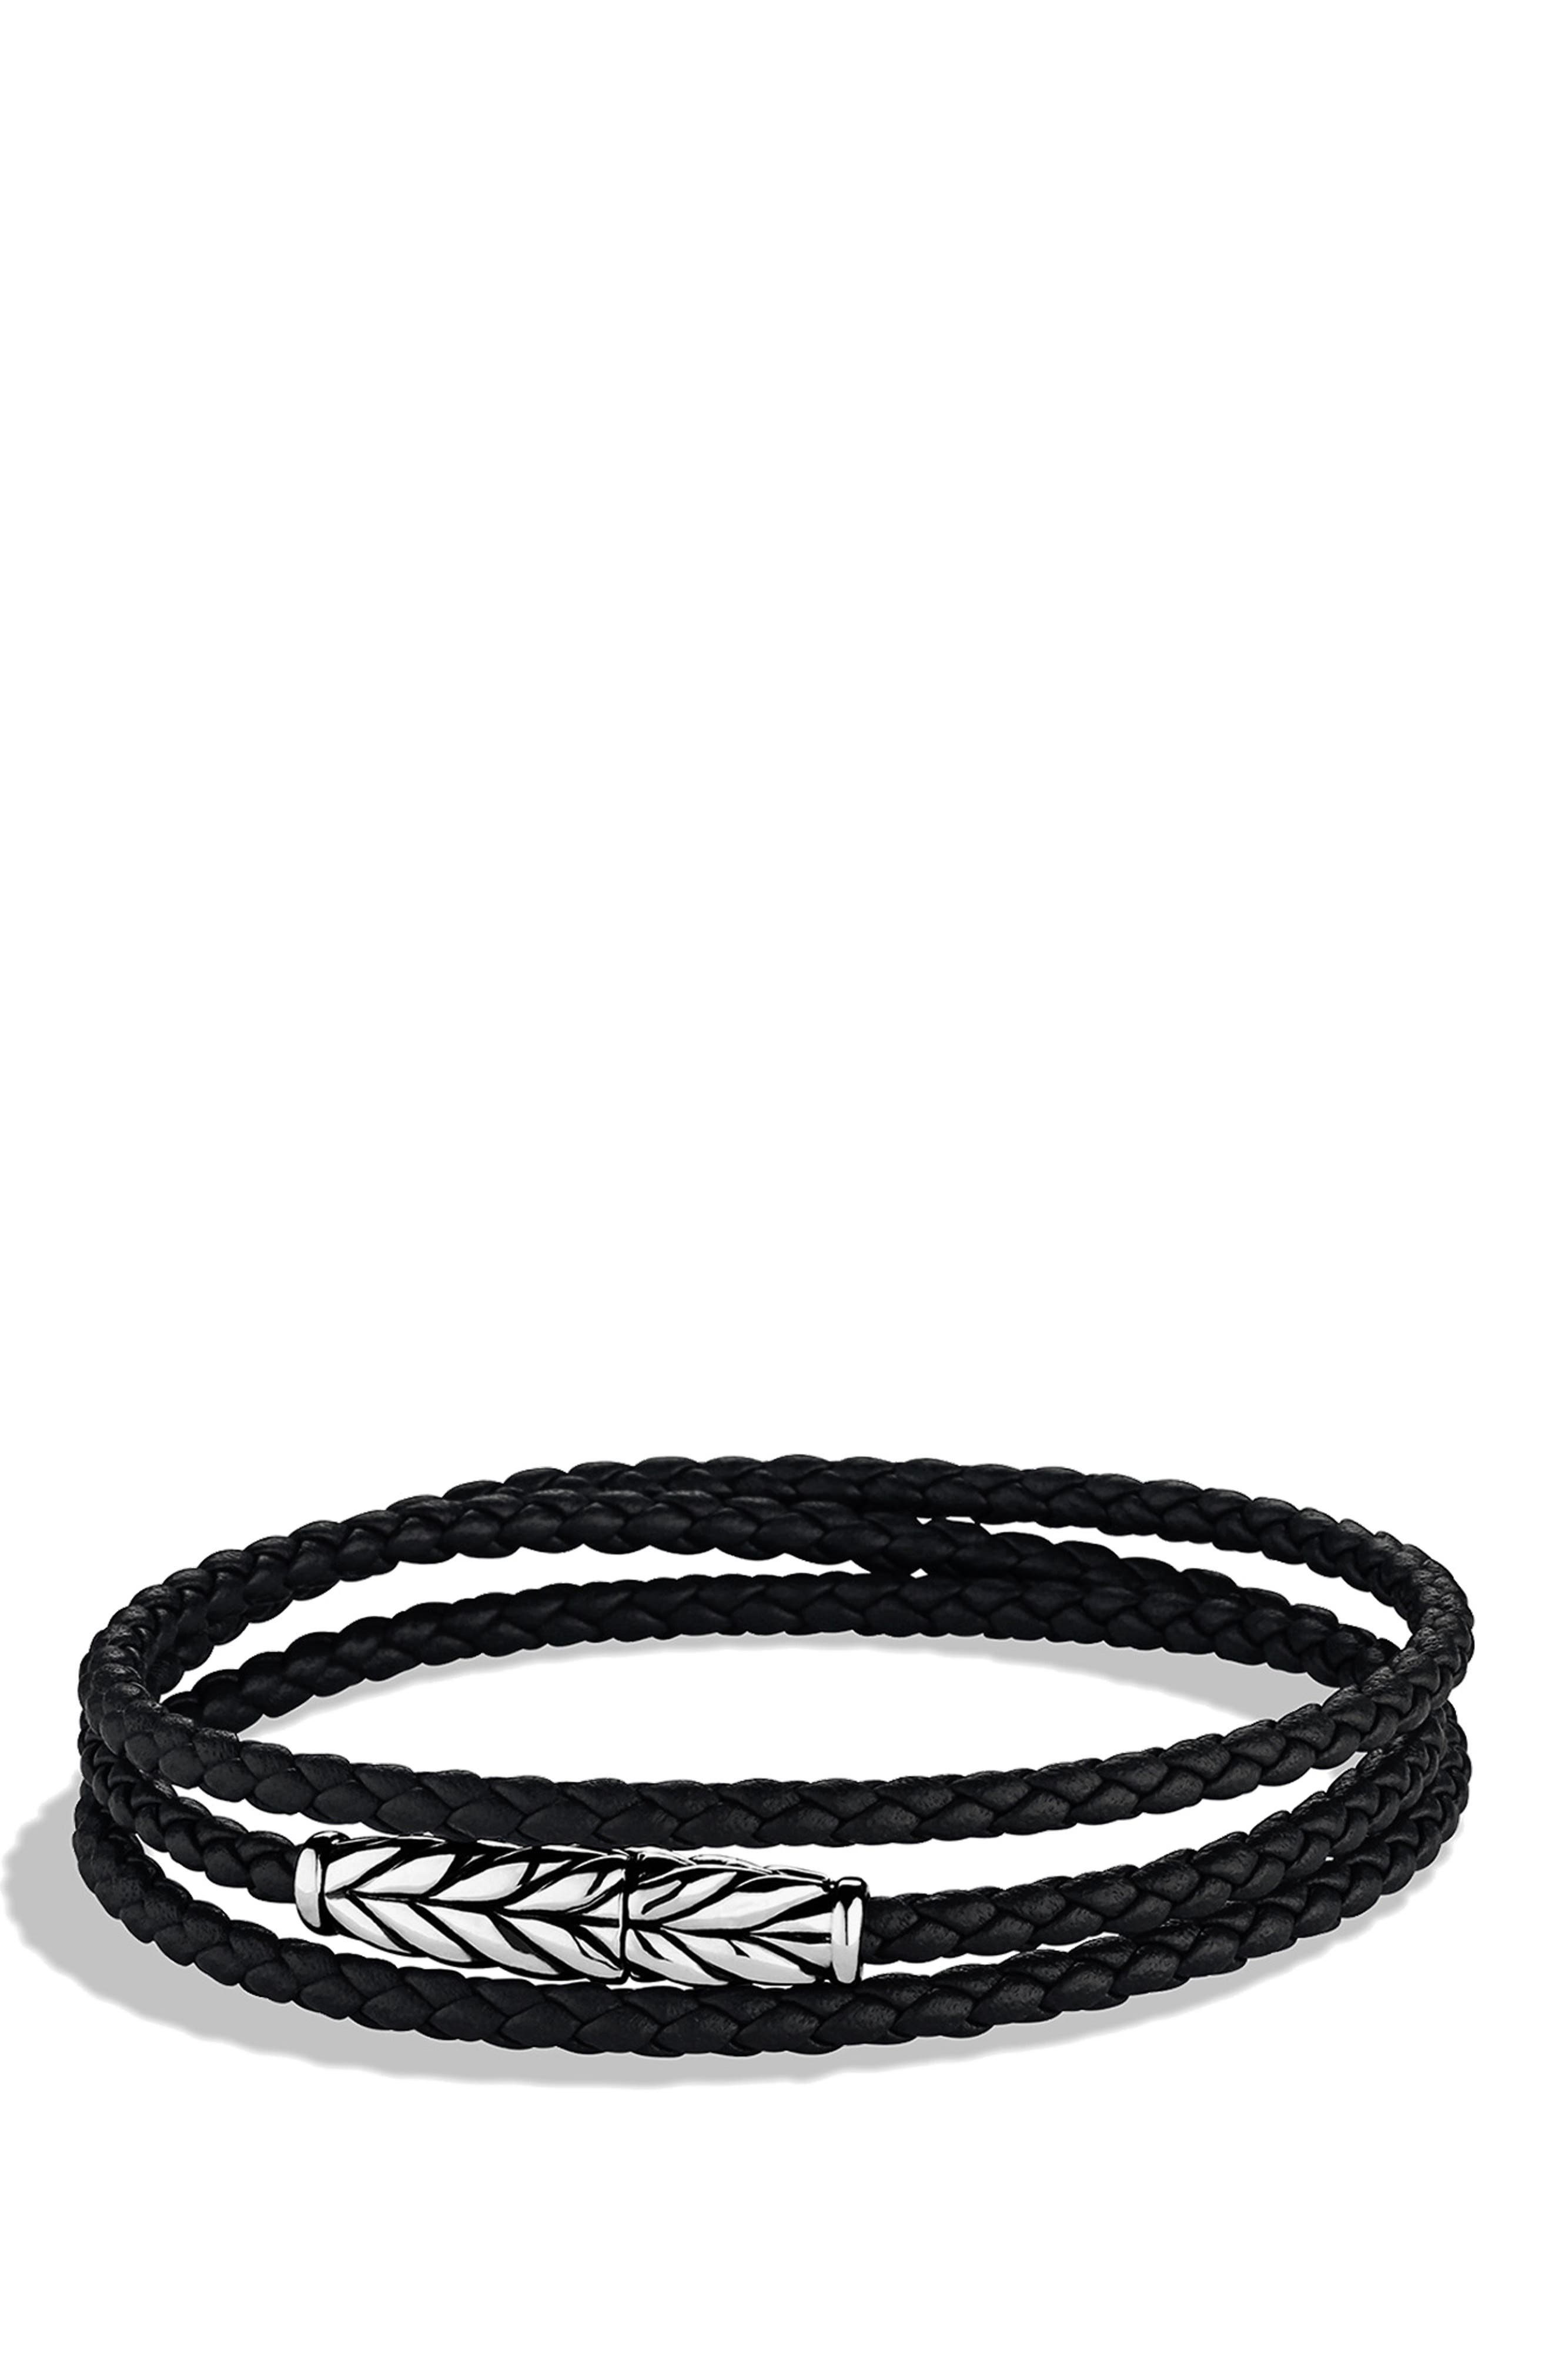 David Yurman 'Chevron' Triple-Wrap Bracelet